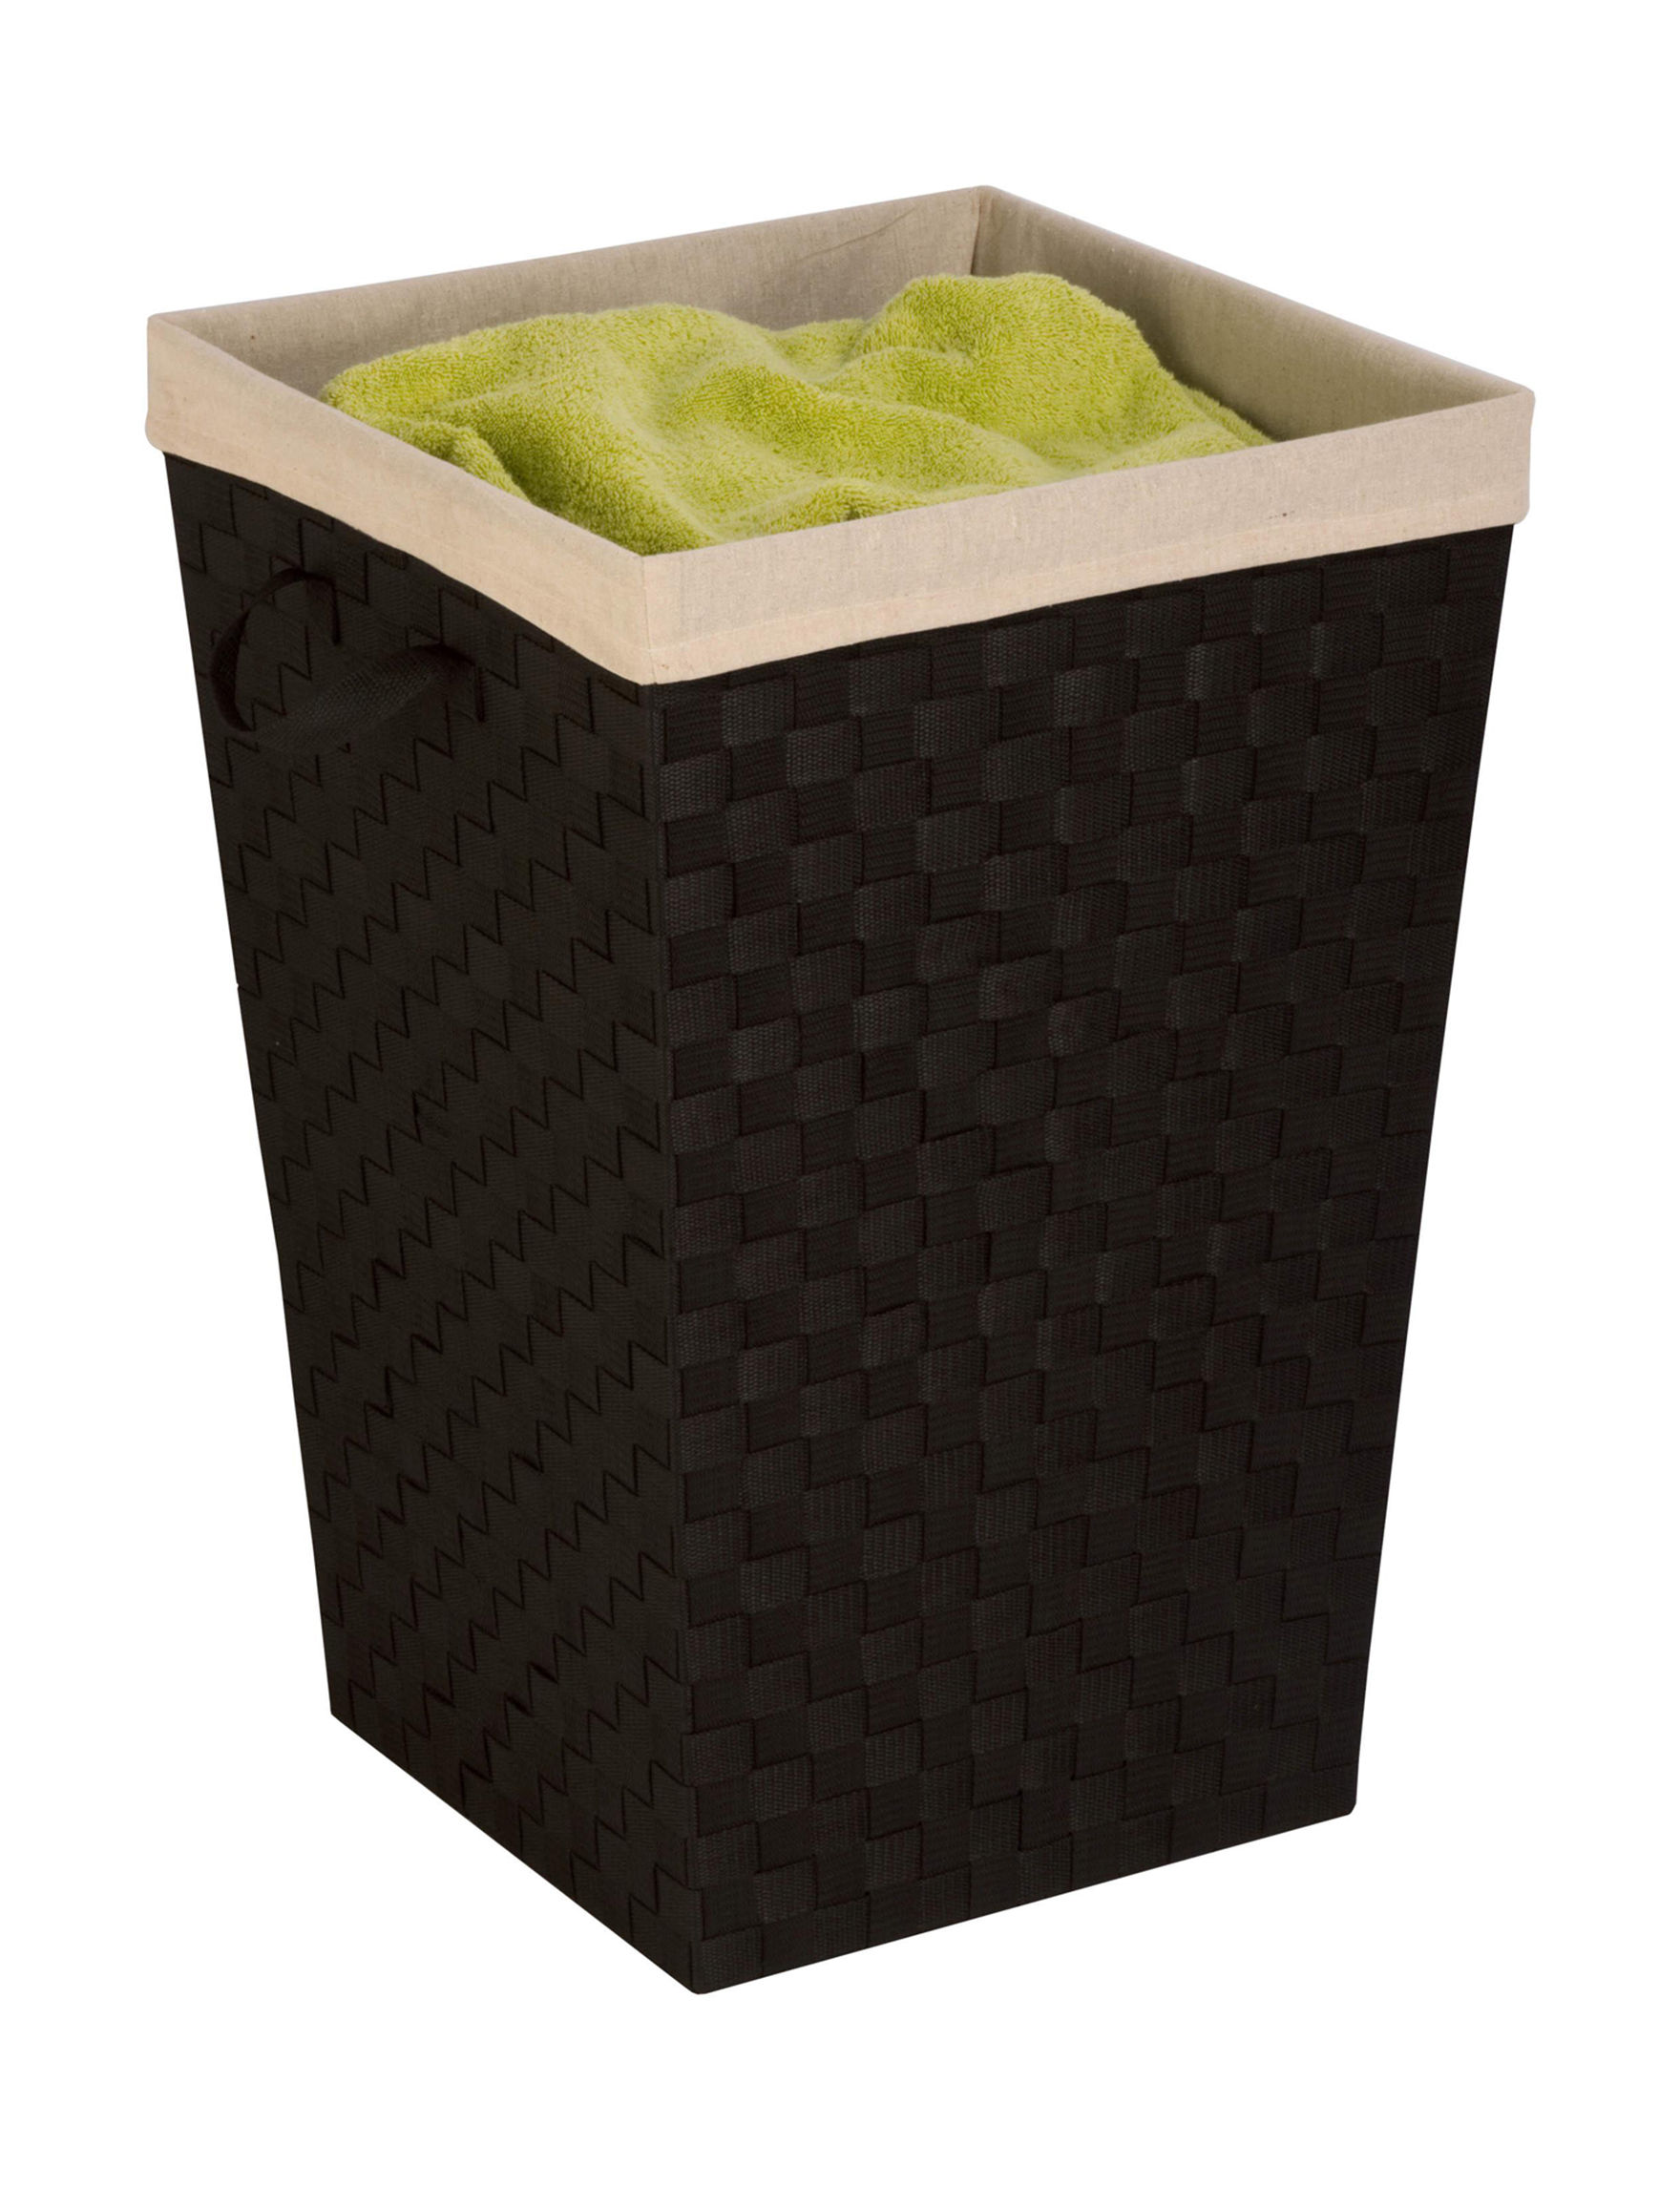 Honey-Can-Do International Black Laundry Hampers Storage & Organization